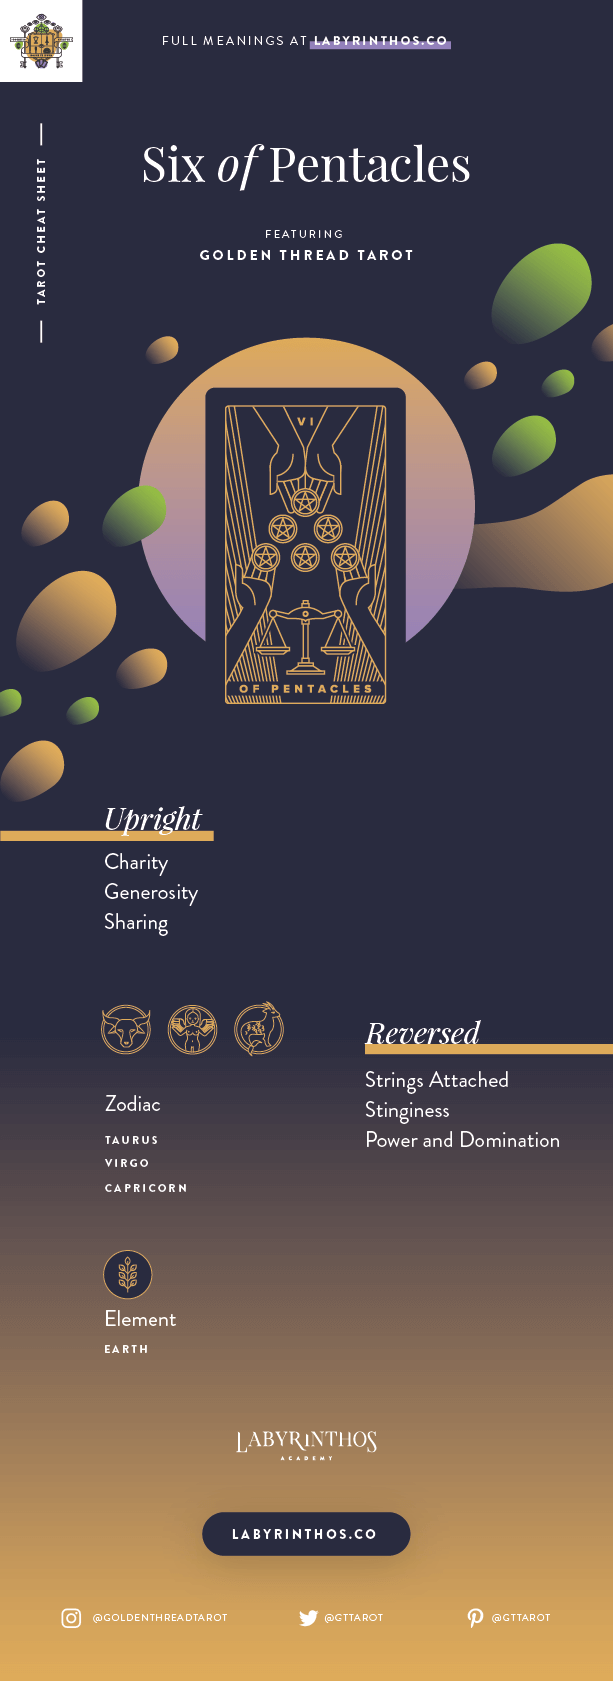 Six of Pentacles Meaning - Tarot Card Meanings Cheat Sheet. Art from Golden Thread Tarot.